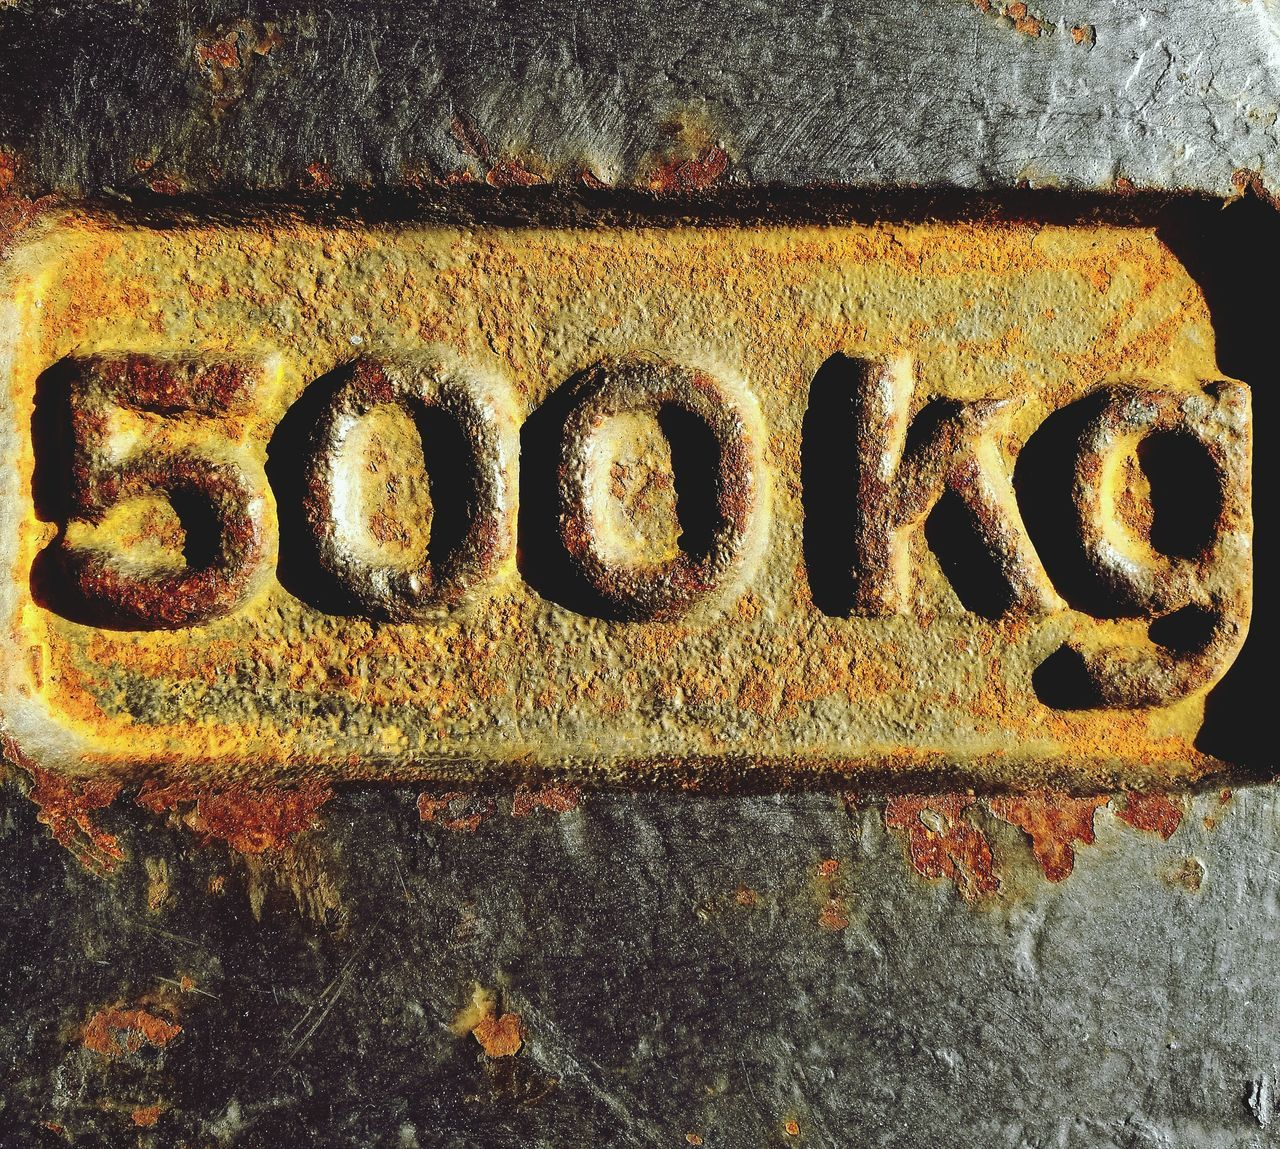 No People Communication Close-up Text Day Outdoors KG Industry Five Zero Old Number Numbers Weight Five Hundred Metal Work Hundredth Industrial Equipment Weights Metal Art Old Metal Red Rost Heavy